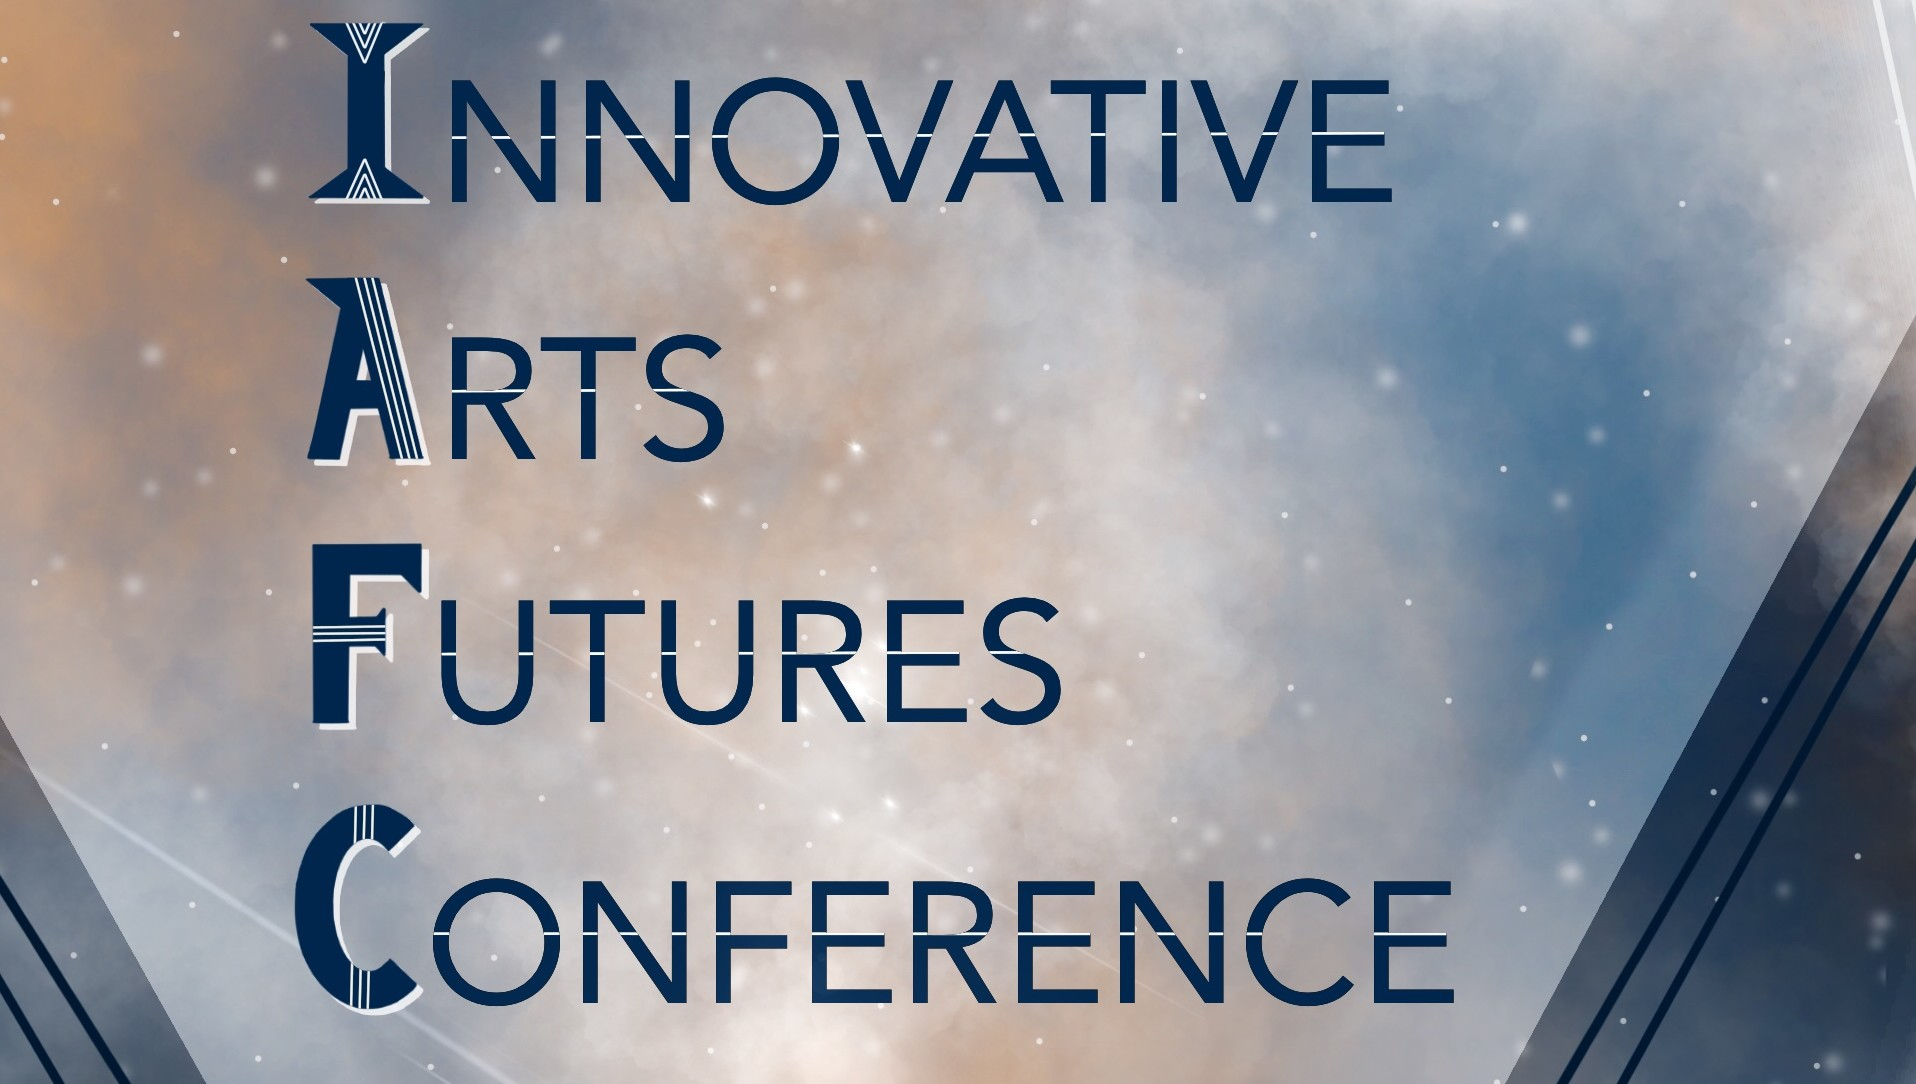 Innovative Arts Futures Conference flyer